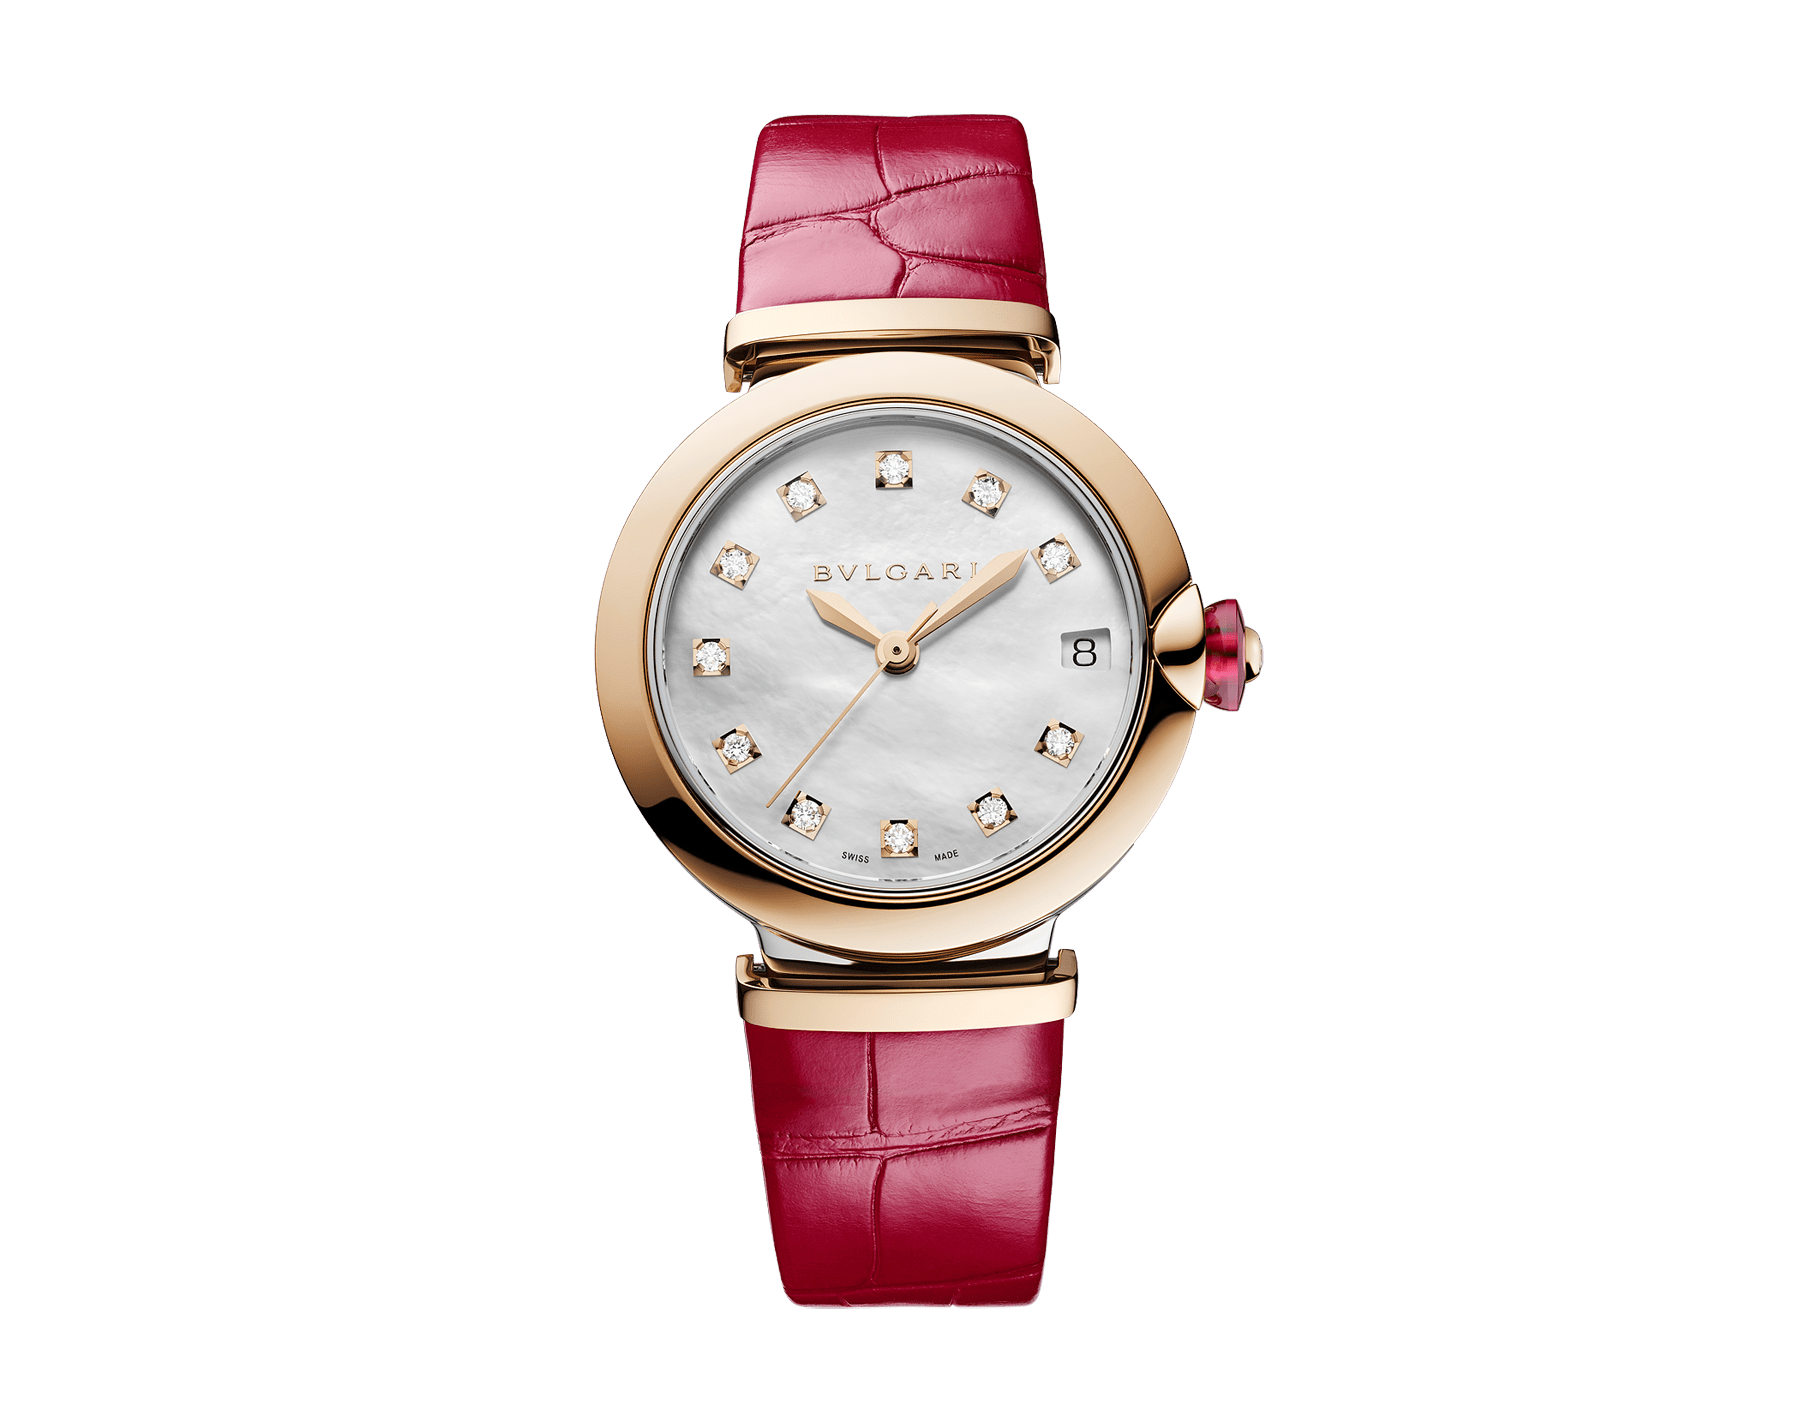 LVCEA watch with stainless steel case, 18 kt rose gold bezel, white mother-of-pearl dial, diamond indexes and fuchsia leather bracelet 102997 image 1